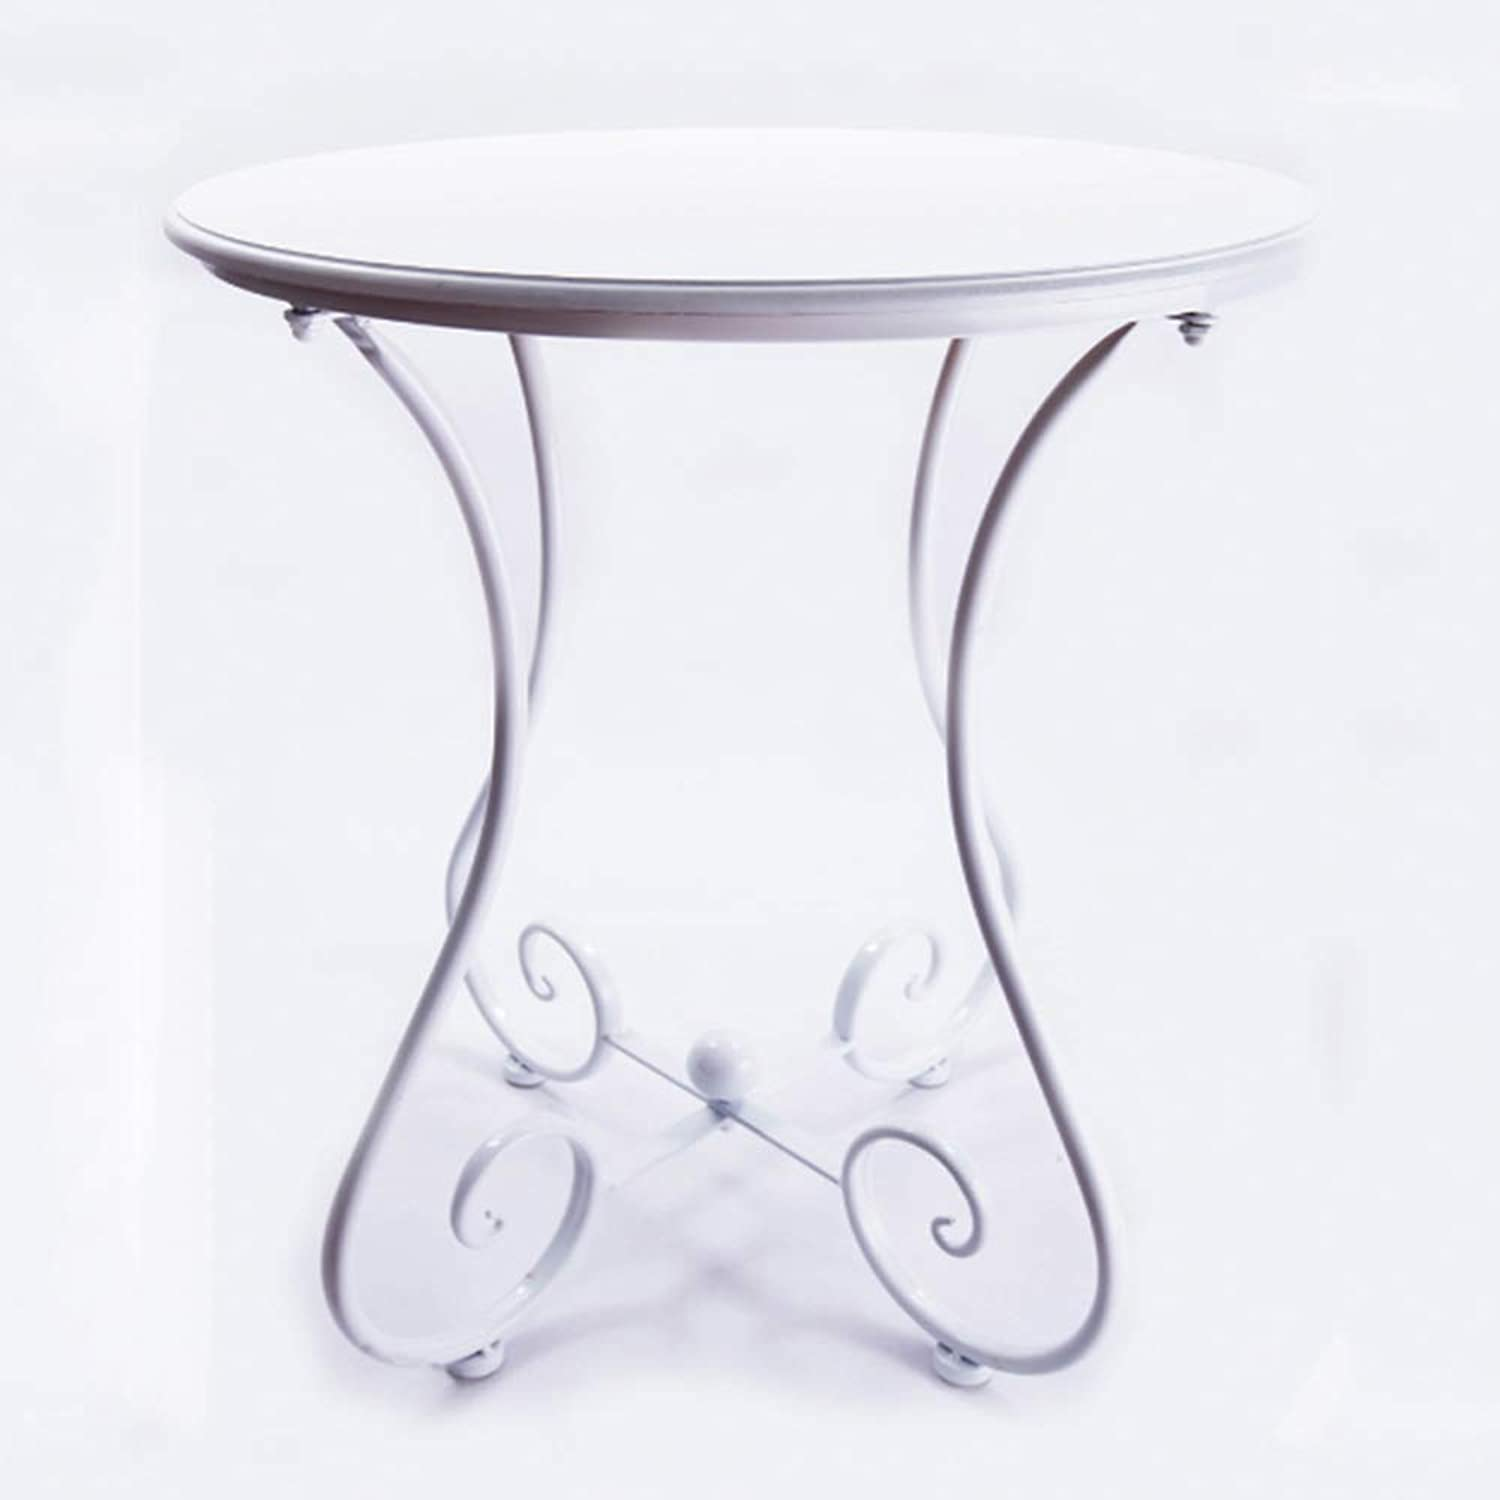 Small Coffee Table MDF Side Table European Small Round Table Multifunctional Sofa Table 3 colors (color   White, Size   60  65cm)